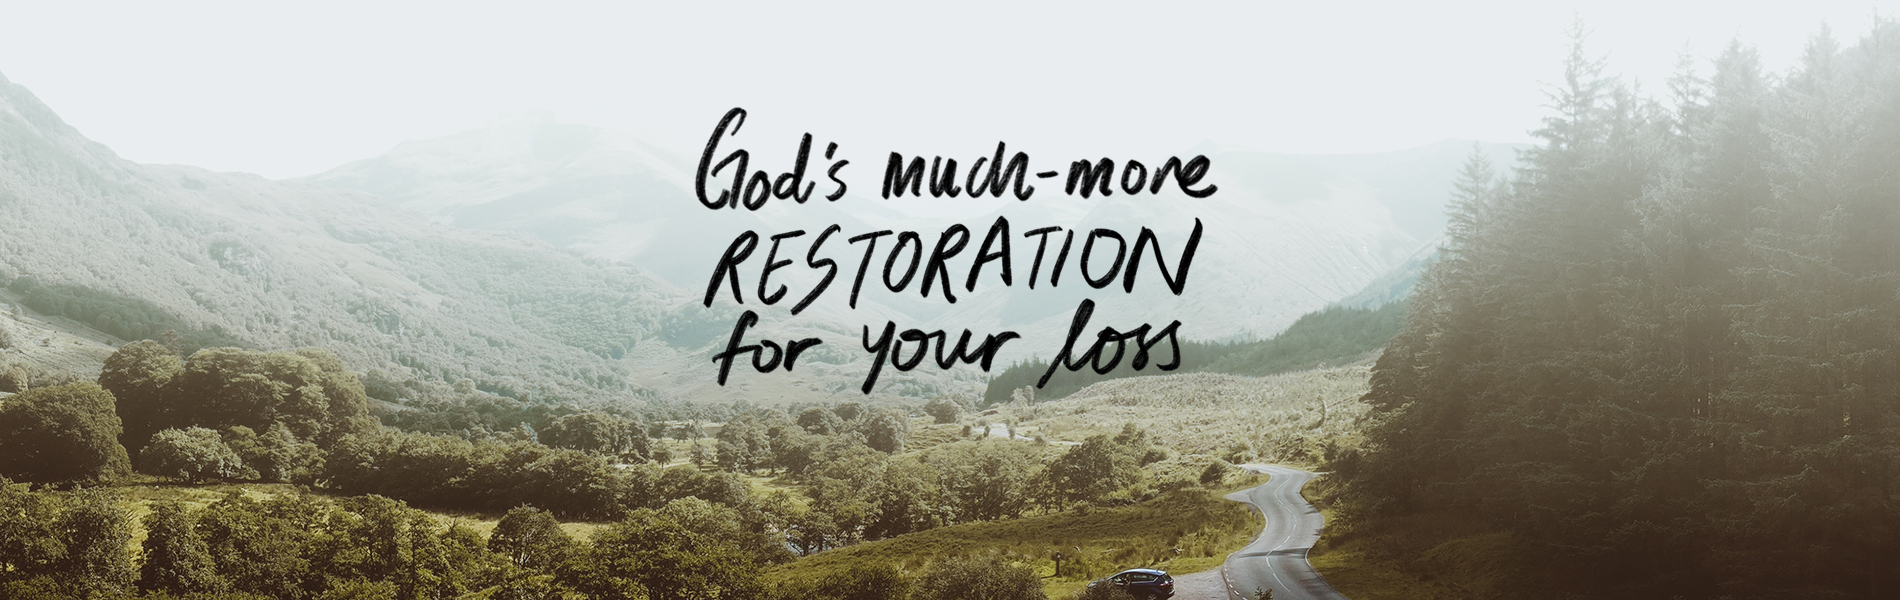 03-Mar_Gods-Much-More-Restoration-For-Your-Loss Home | New Creation TV | NCTV